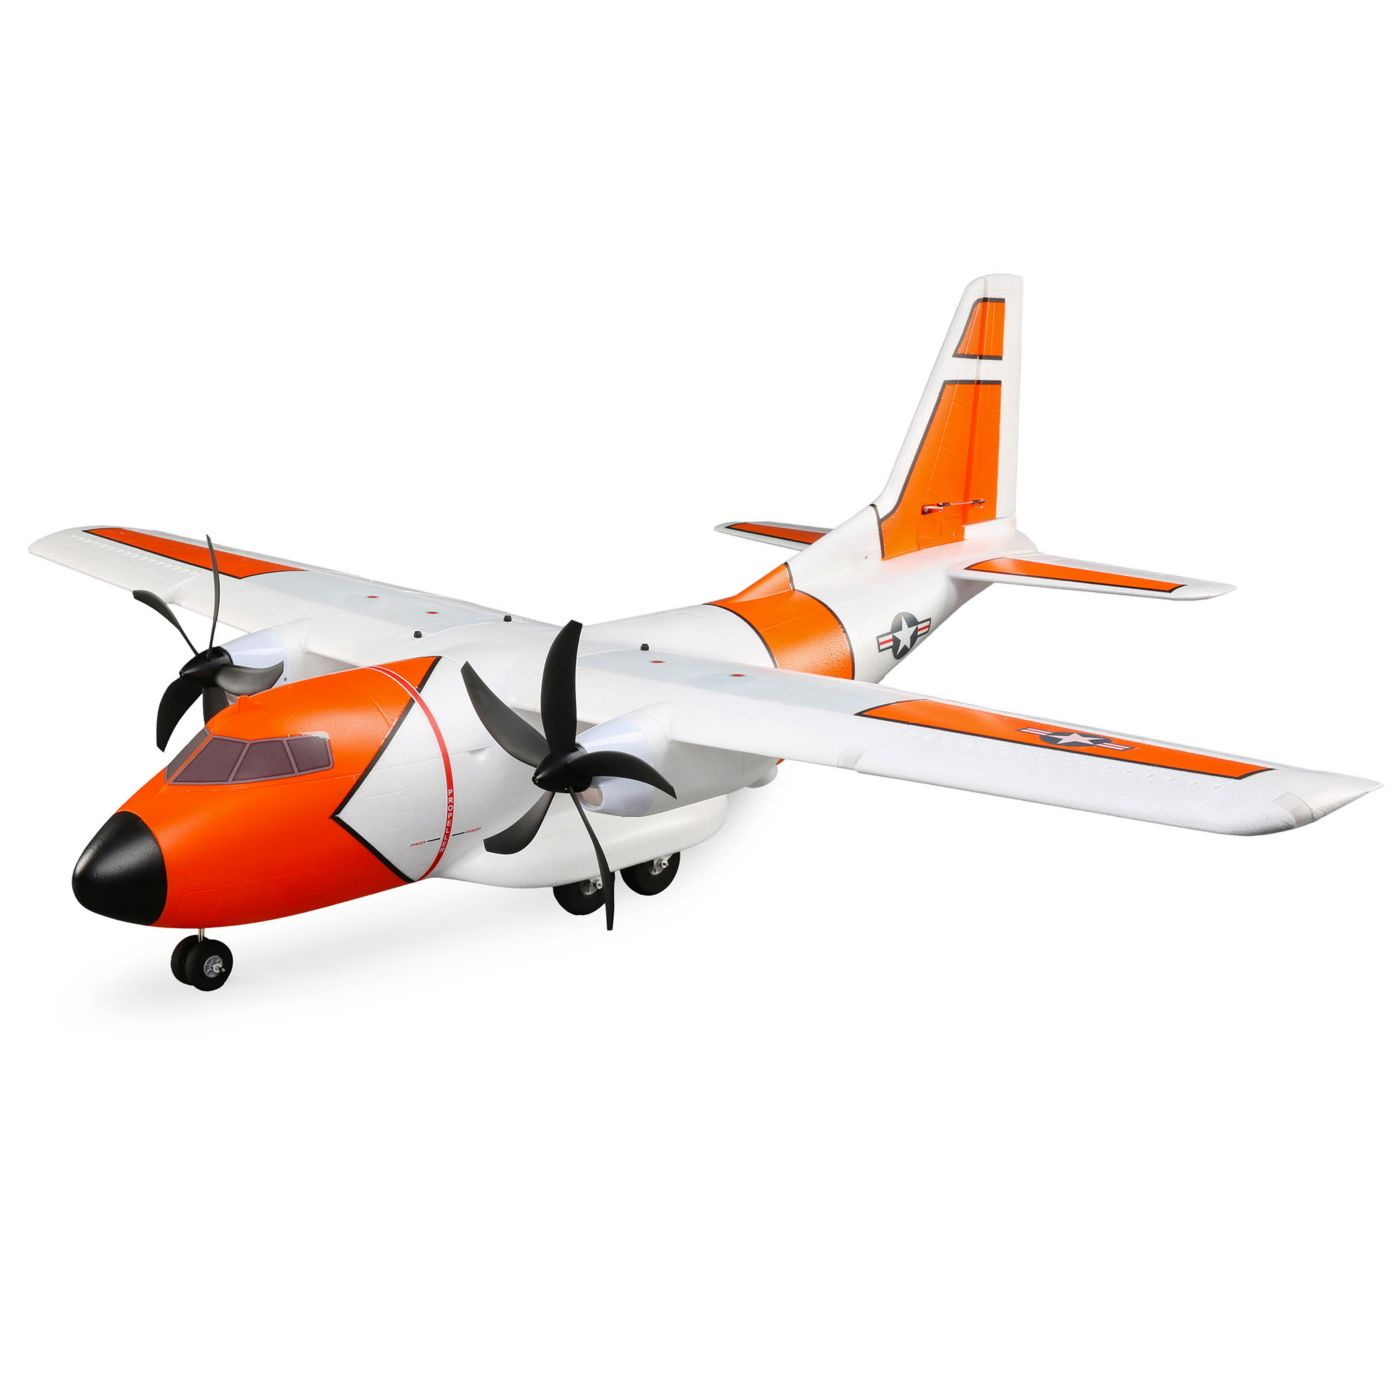 "E-flite EC-1500 Twin 1.5m BNF Basic with AS3X and SAFE Select - <font color=""red""><b>FREE BATTERY PROMO</b></font>"